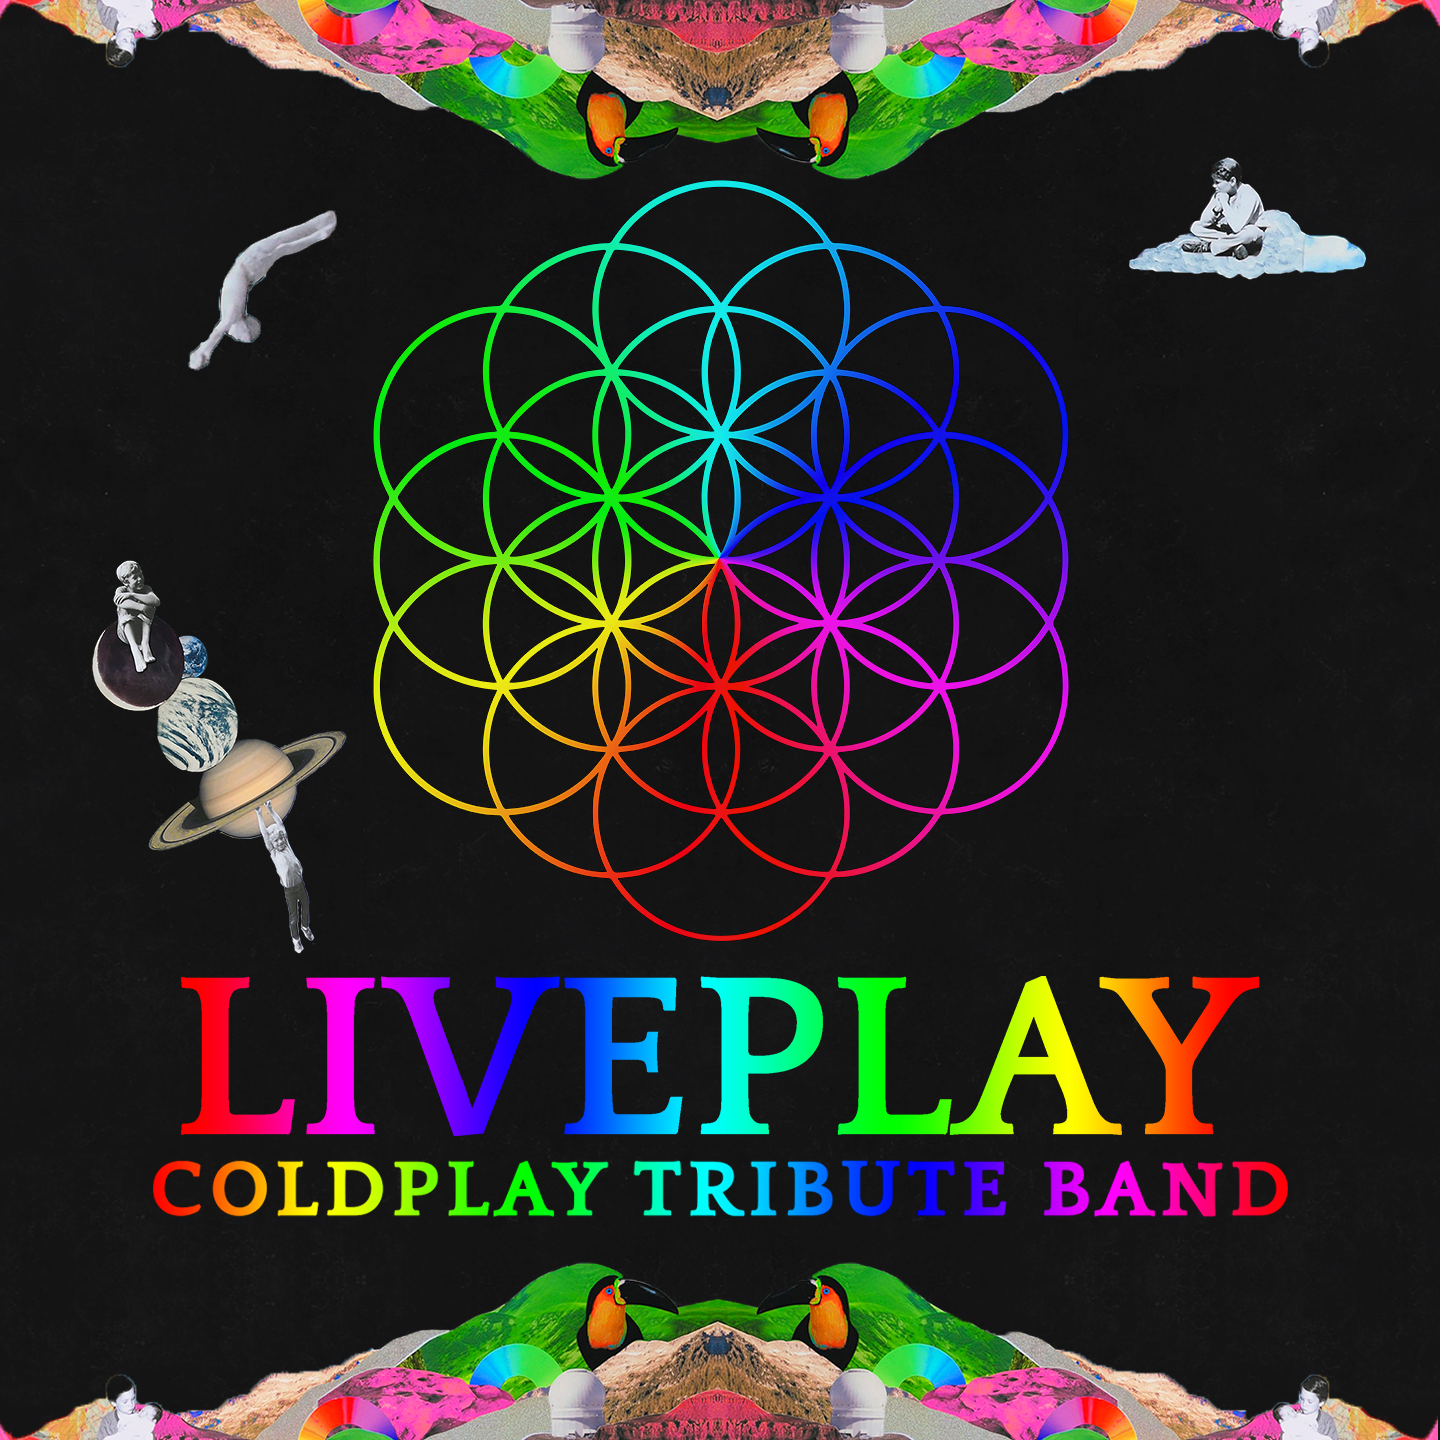 I Liveplay, tribute band italiana dei famosissimi Coldplay, sono Enrico Coin, Filippo Coin, Angelo Barbierato e Daniele Marcon